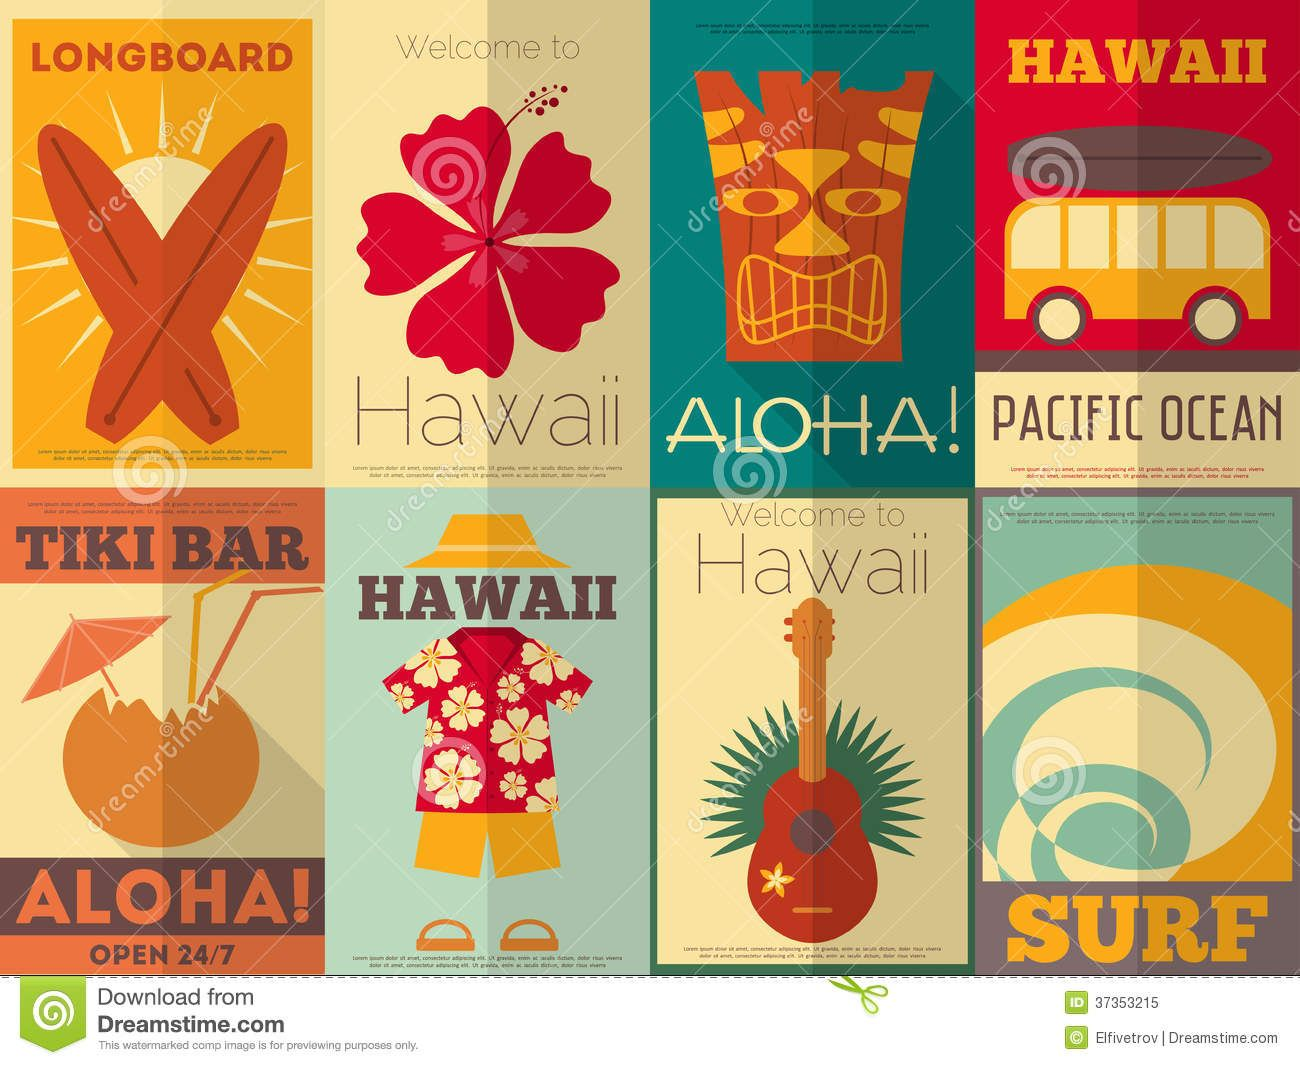 Poster design for free - Retro Hawaii Posters Collection Royalty Free Stock Photo Image